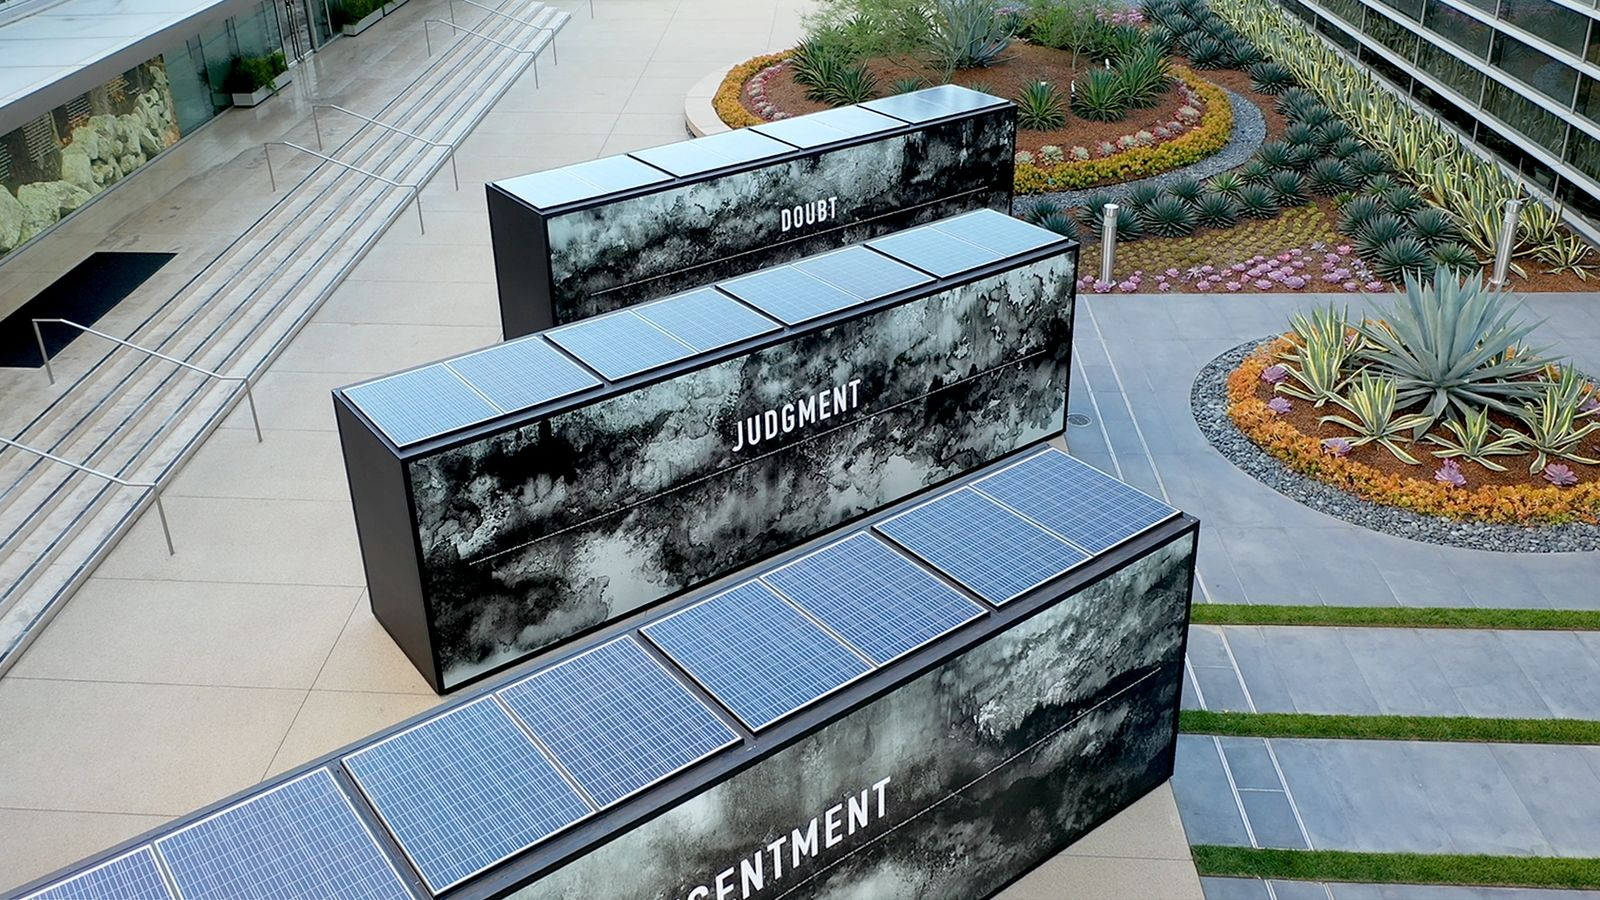 Annenberg solar powered lighted barricades